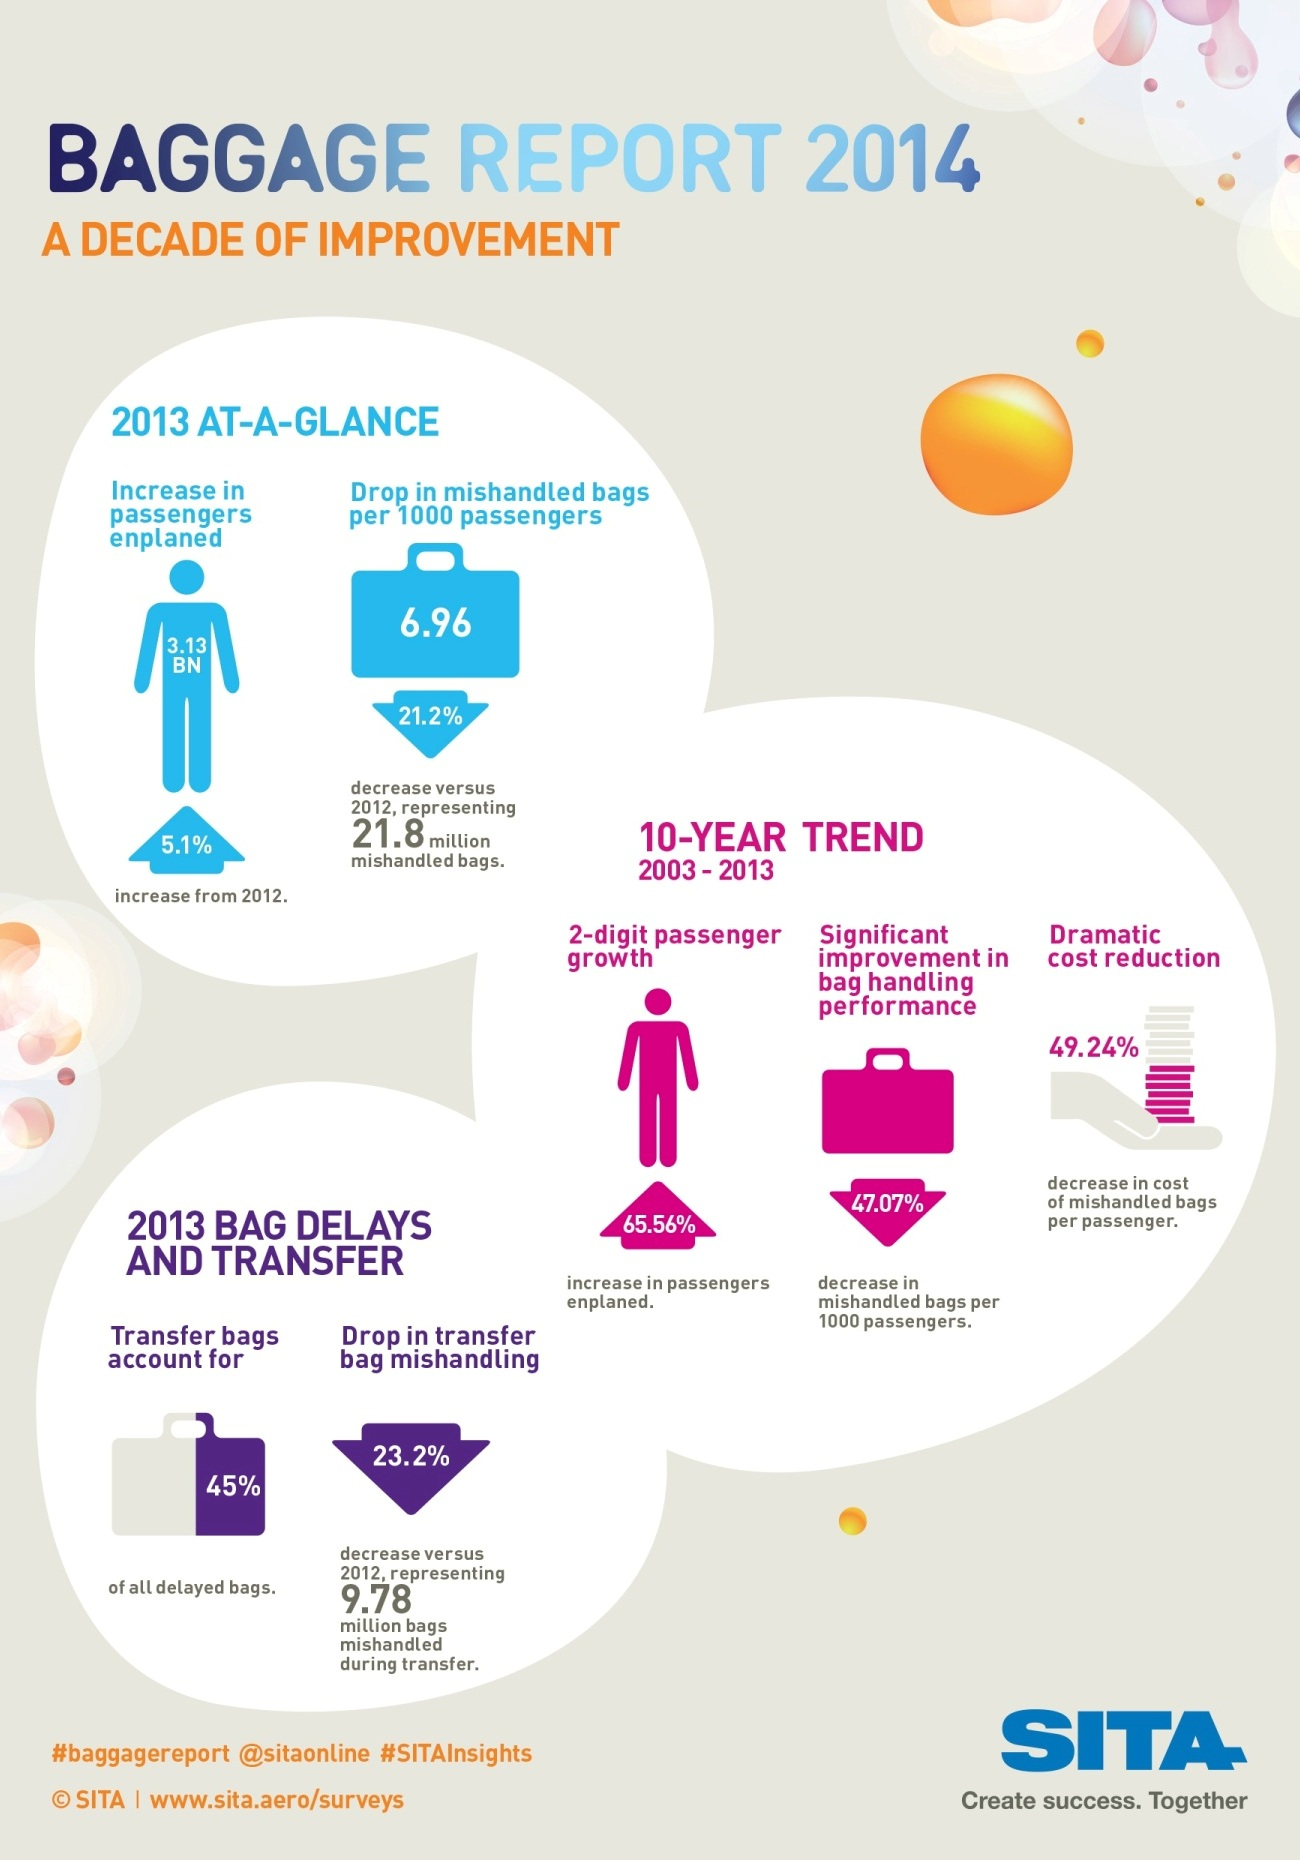 Baggage Report 2014 Infographic